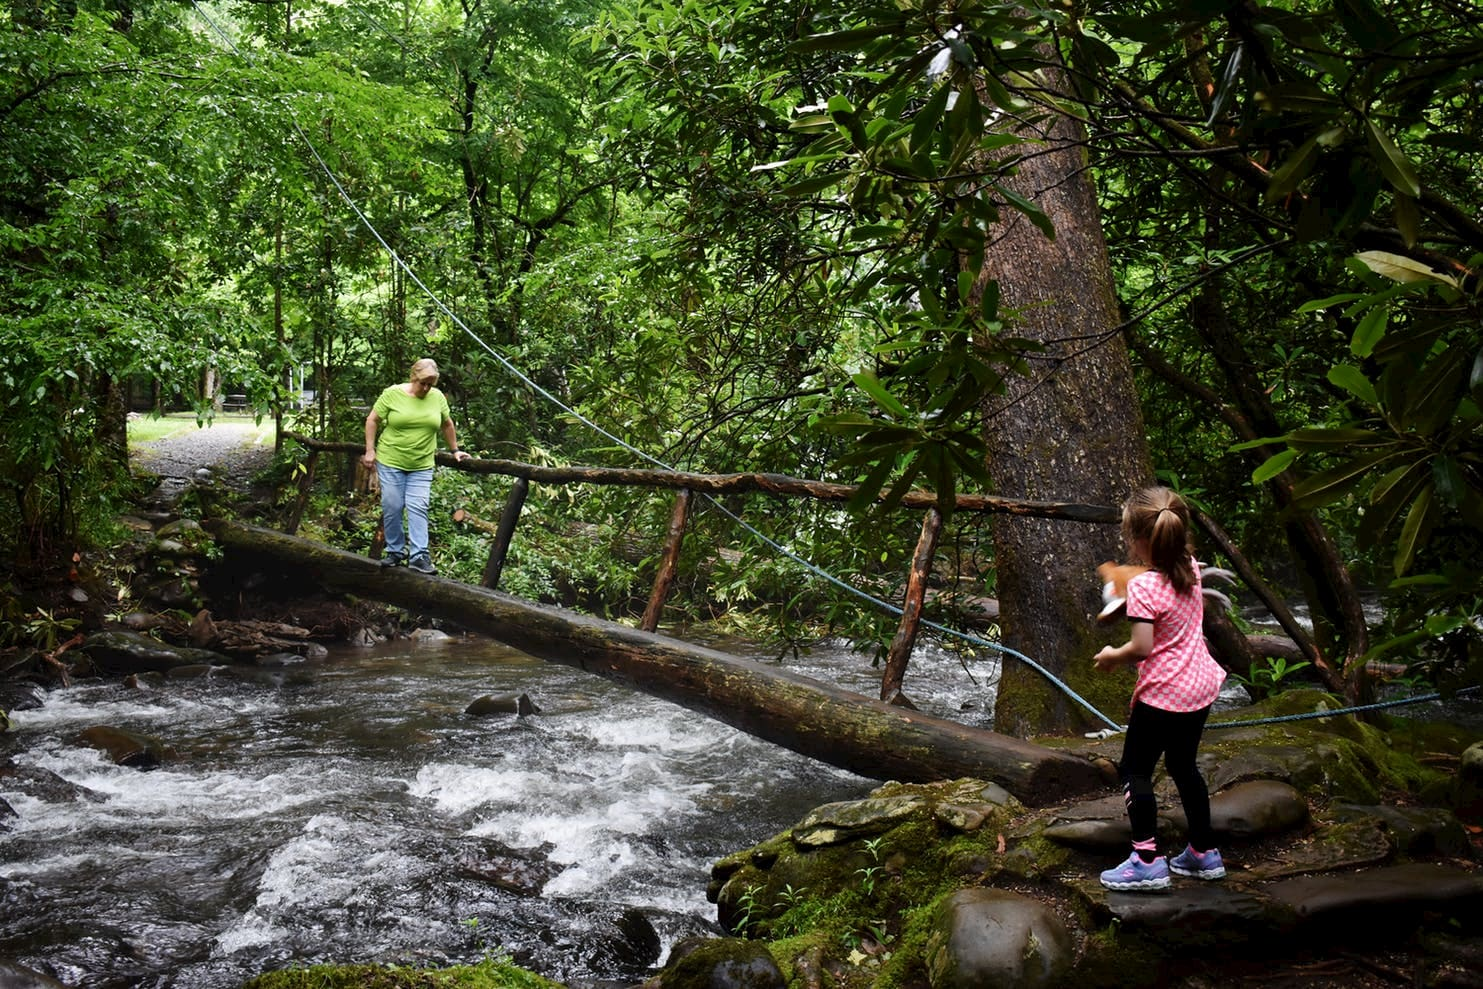 Young girl waiting for older women to cross tree log bridge across a river in the forest.